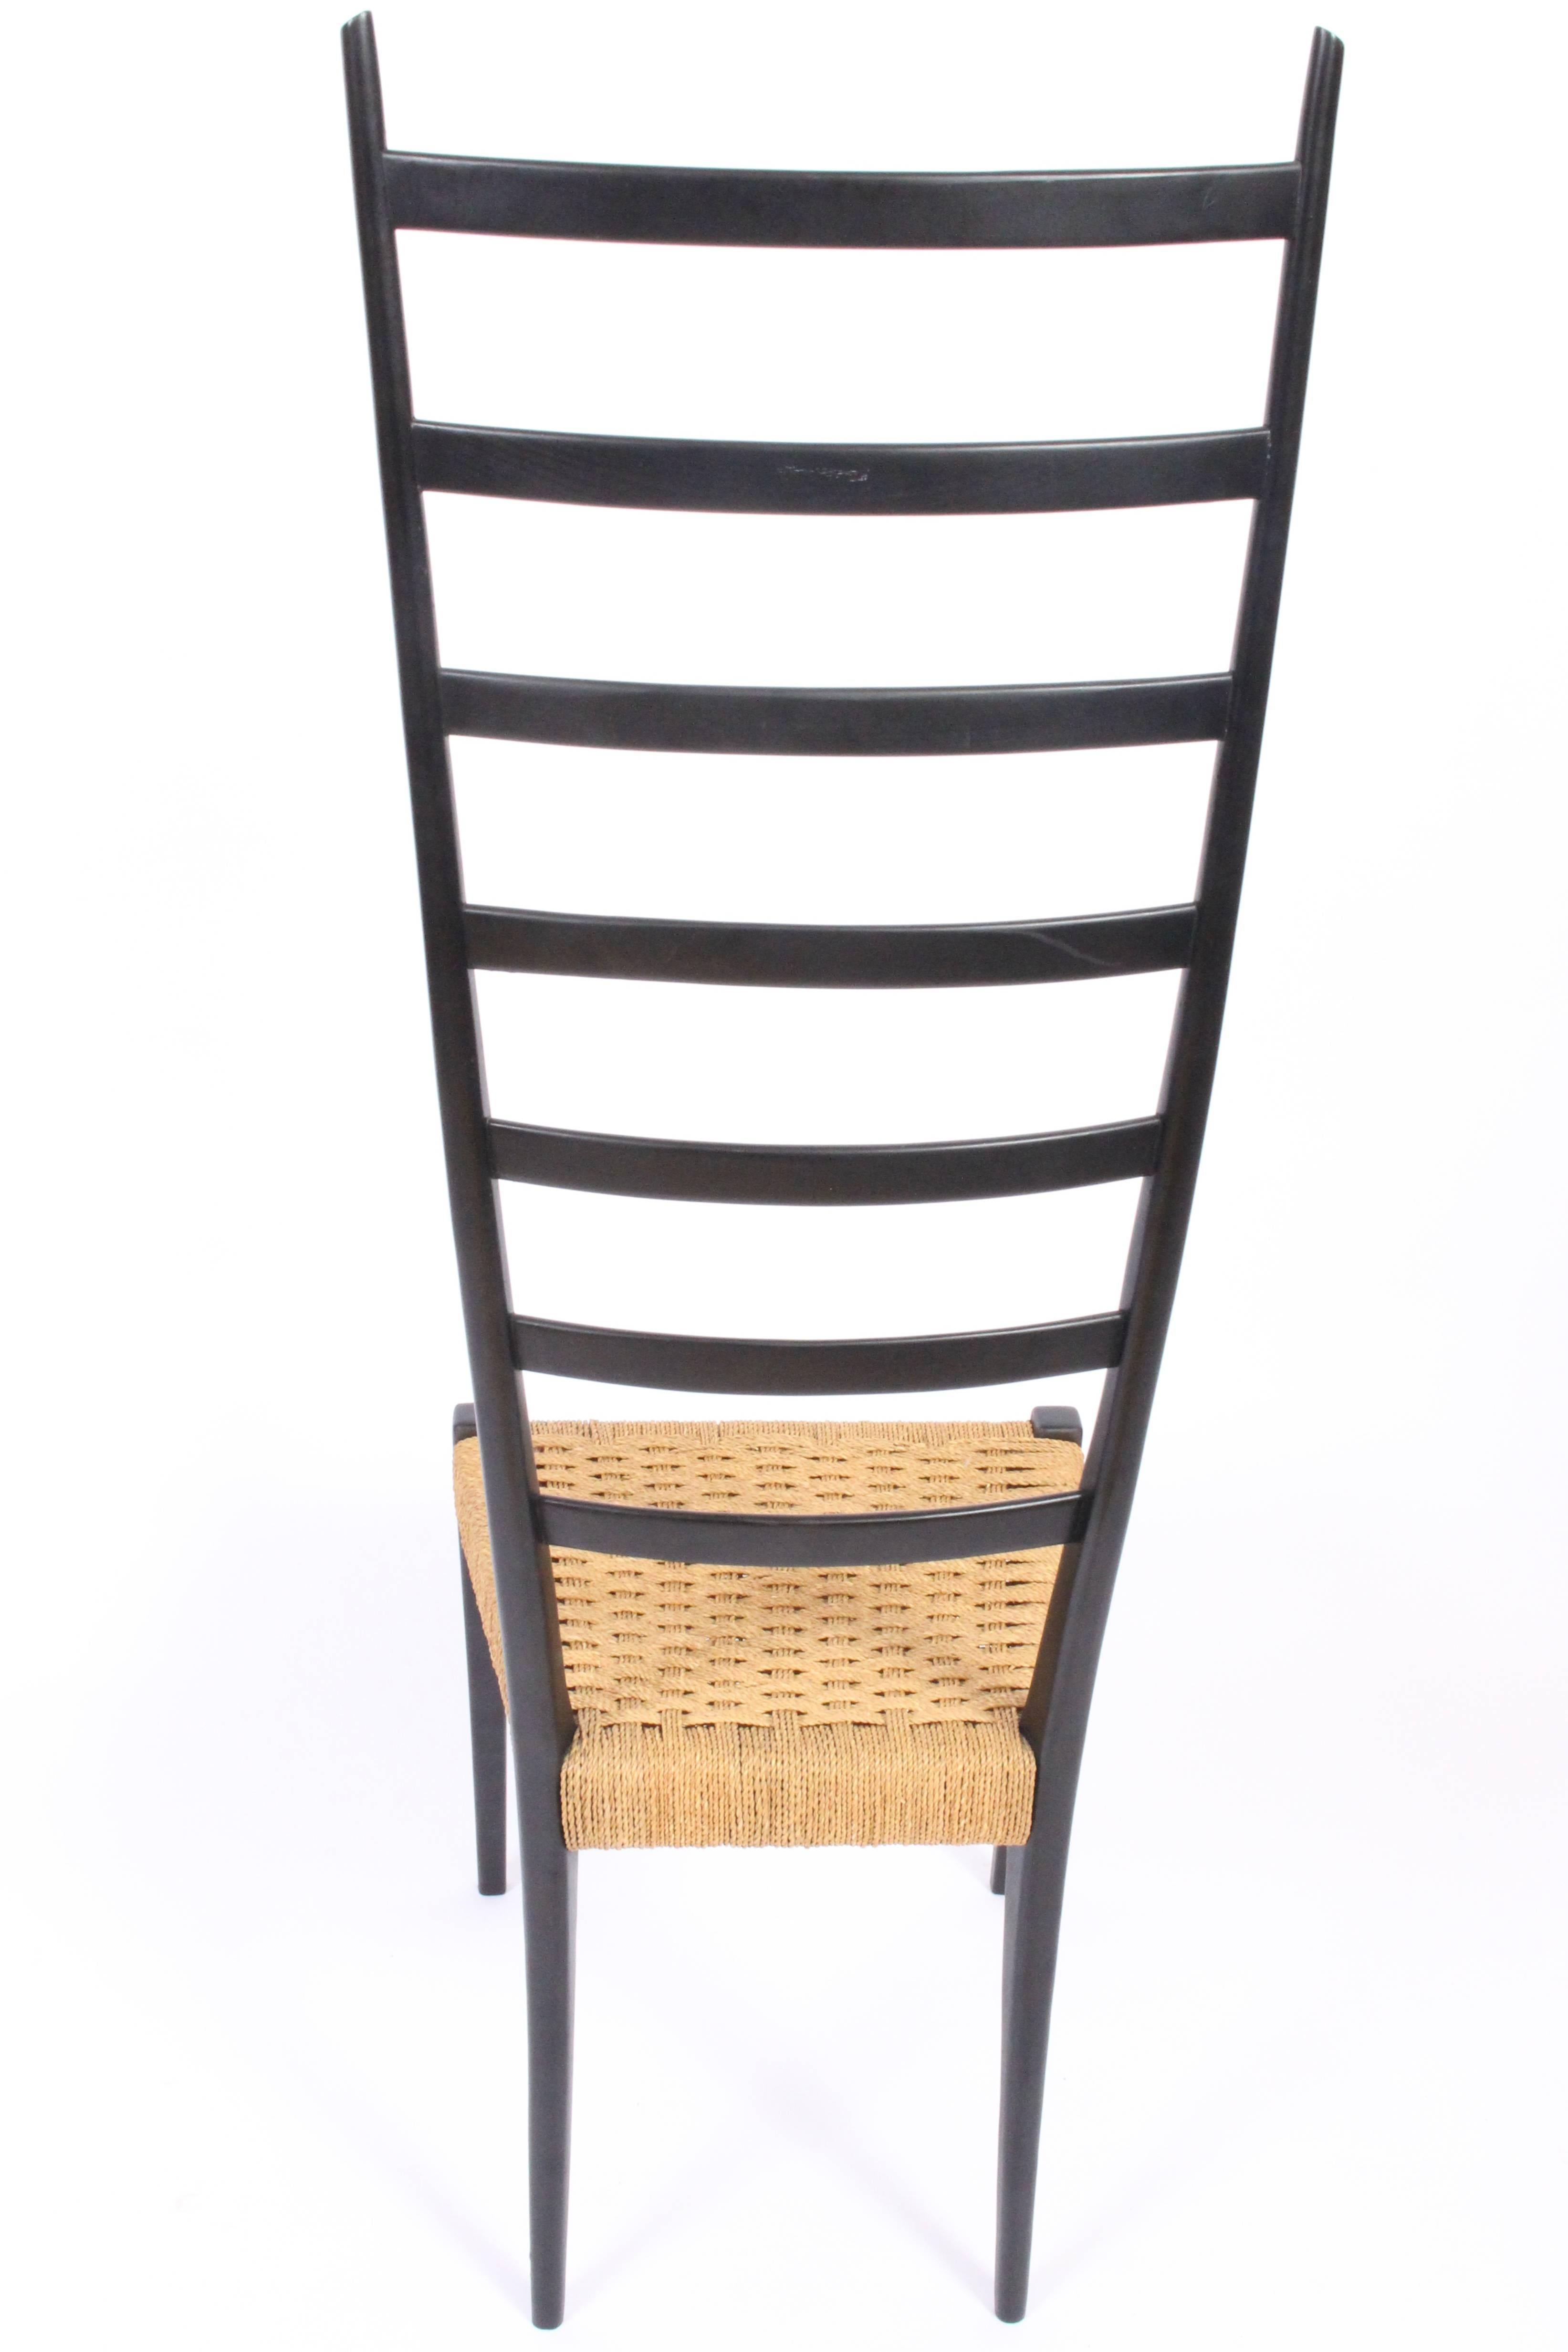 Lacquered Italian Modern Black Lacquer Ladderback Chair By Chiavari, Italy  For Sale